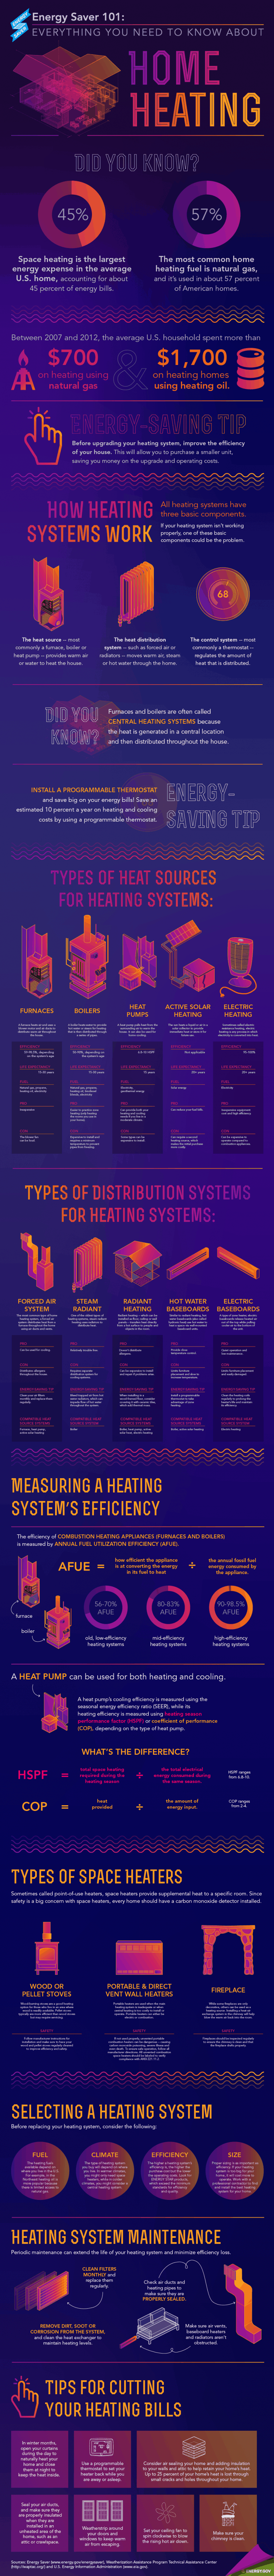 Air Duct Cleaning Infographic